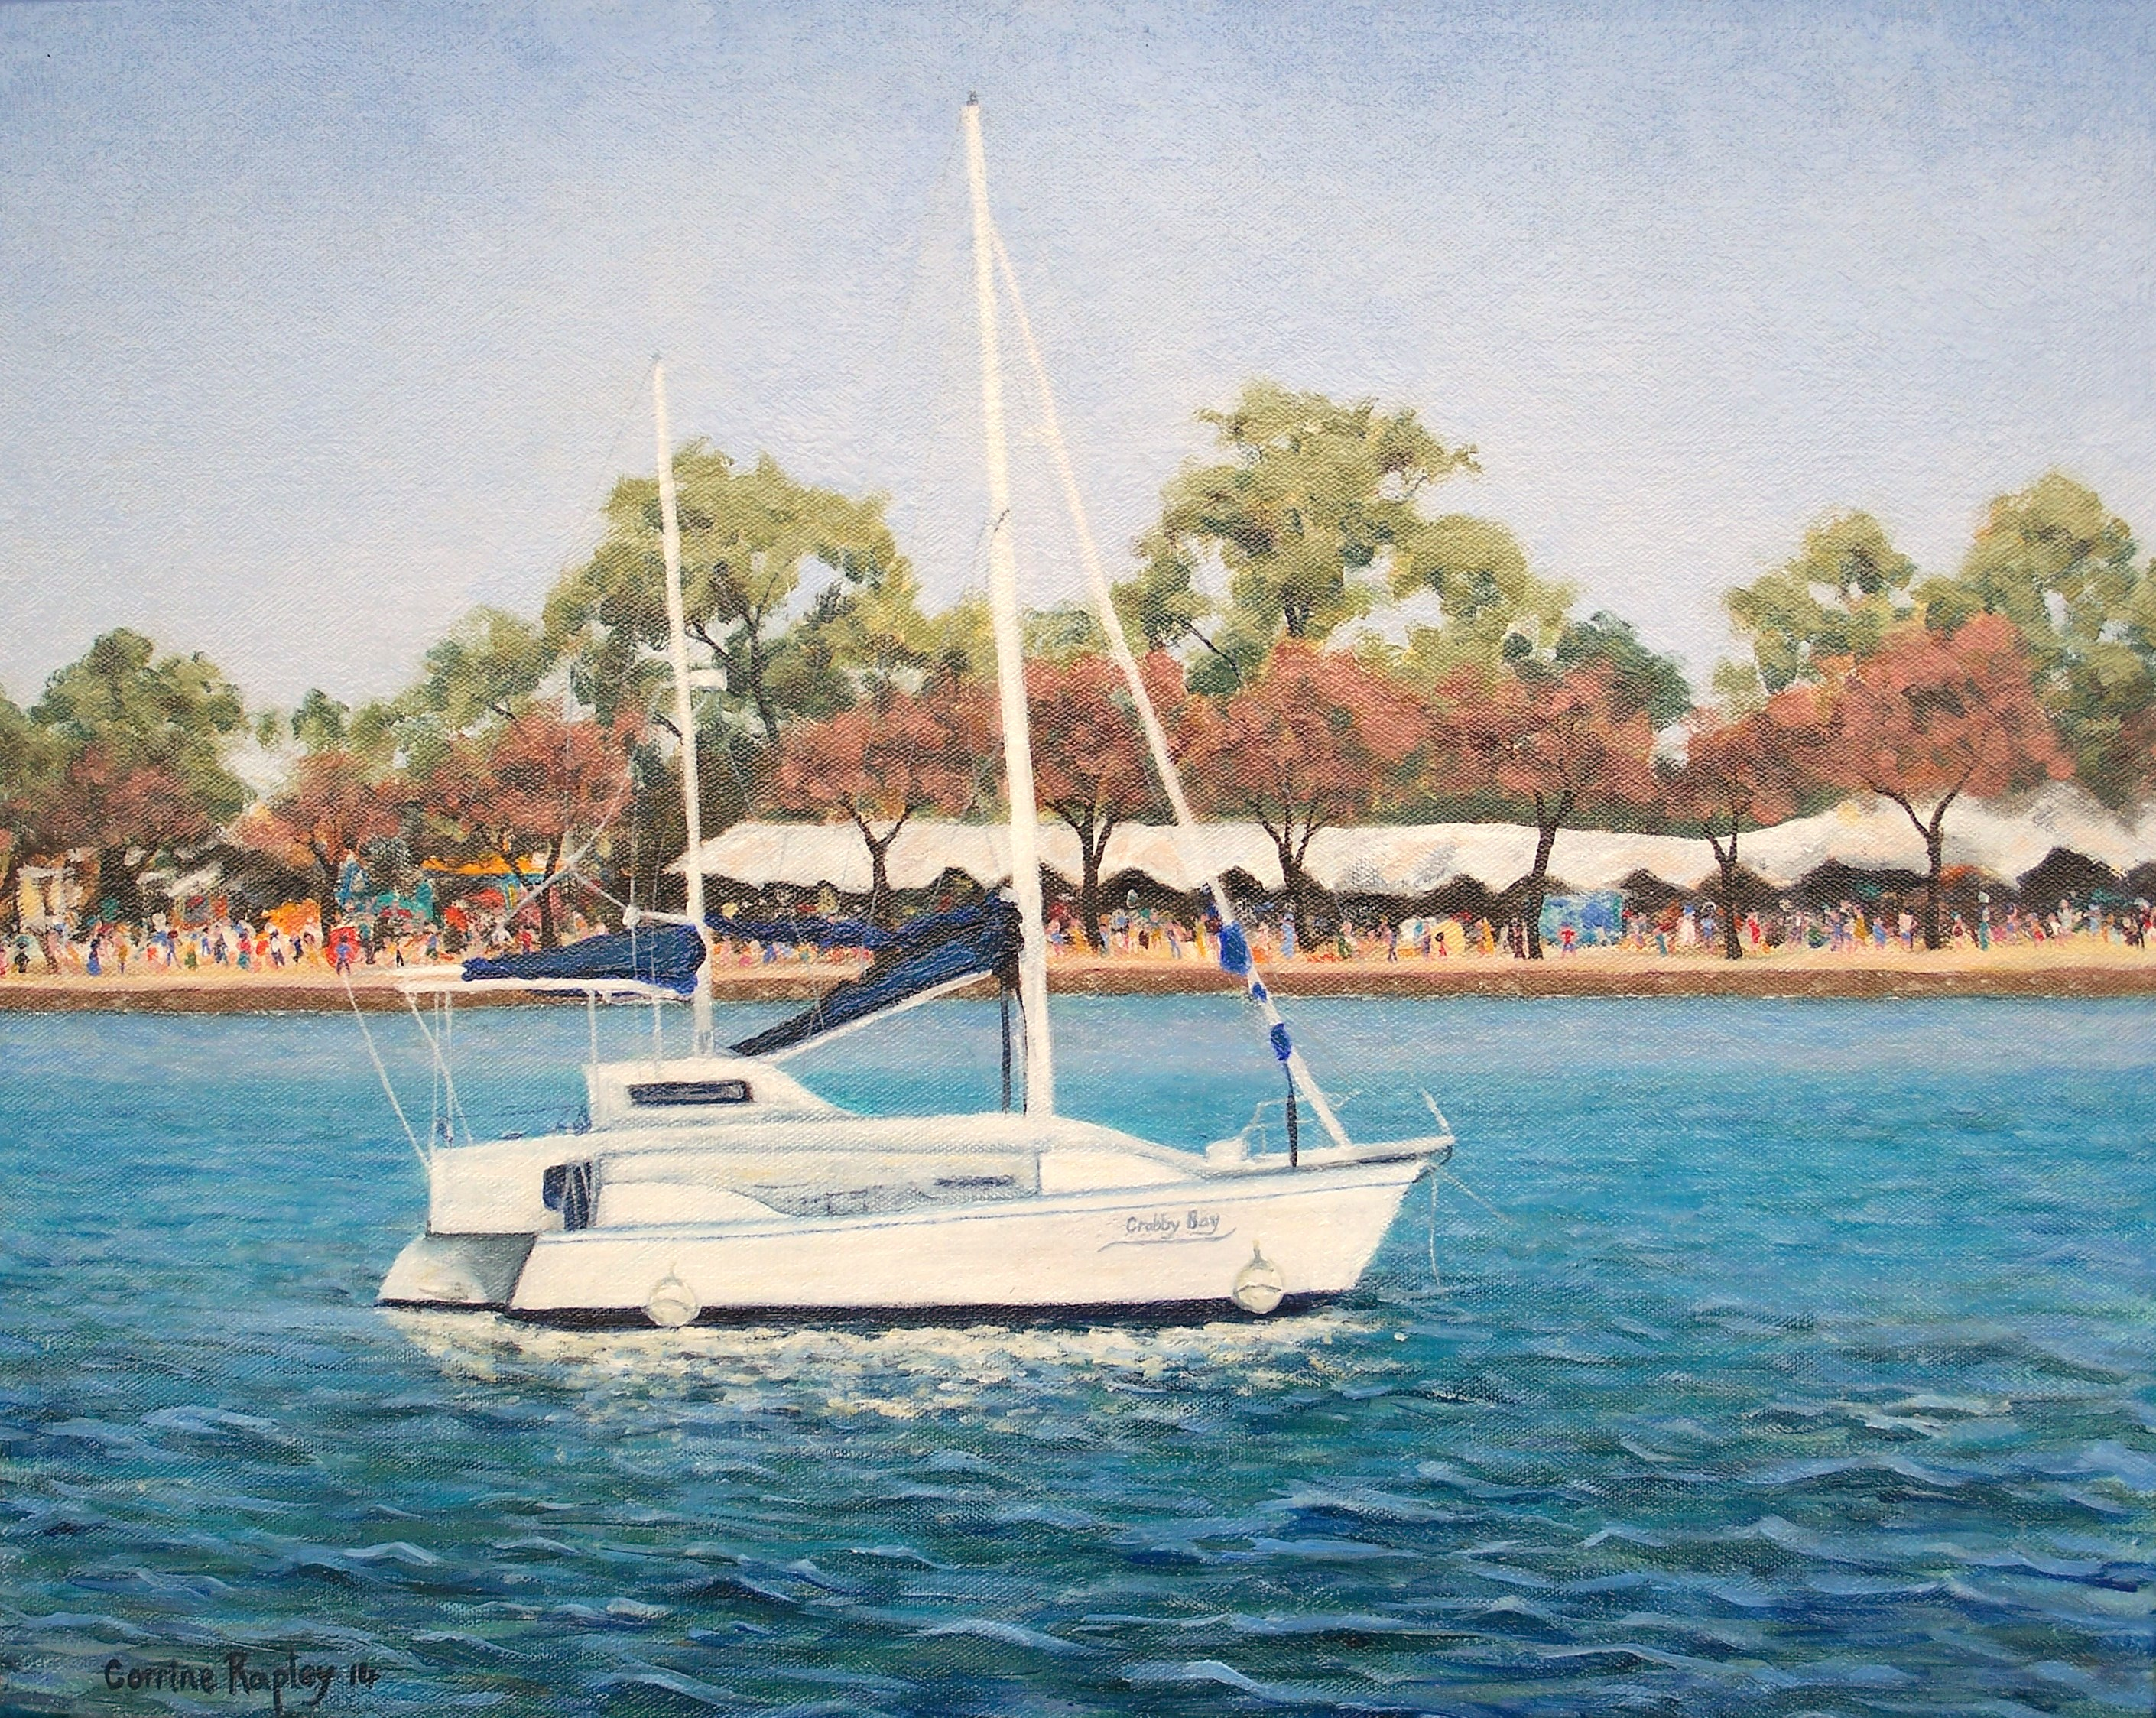 Catamaran at Crab Fest